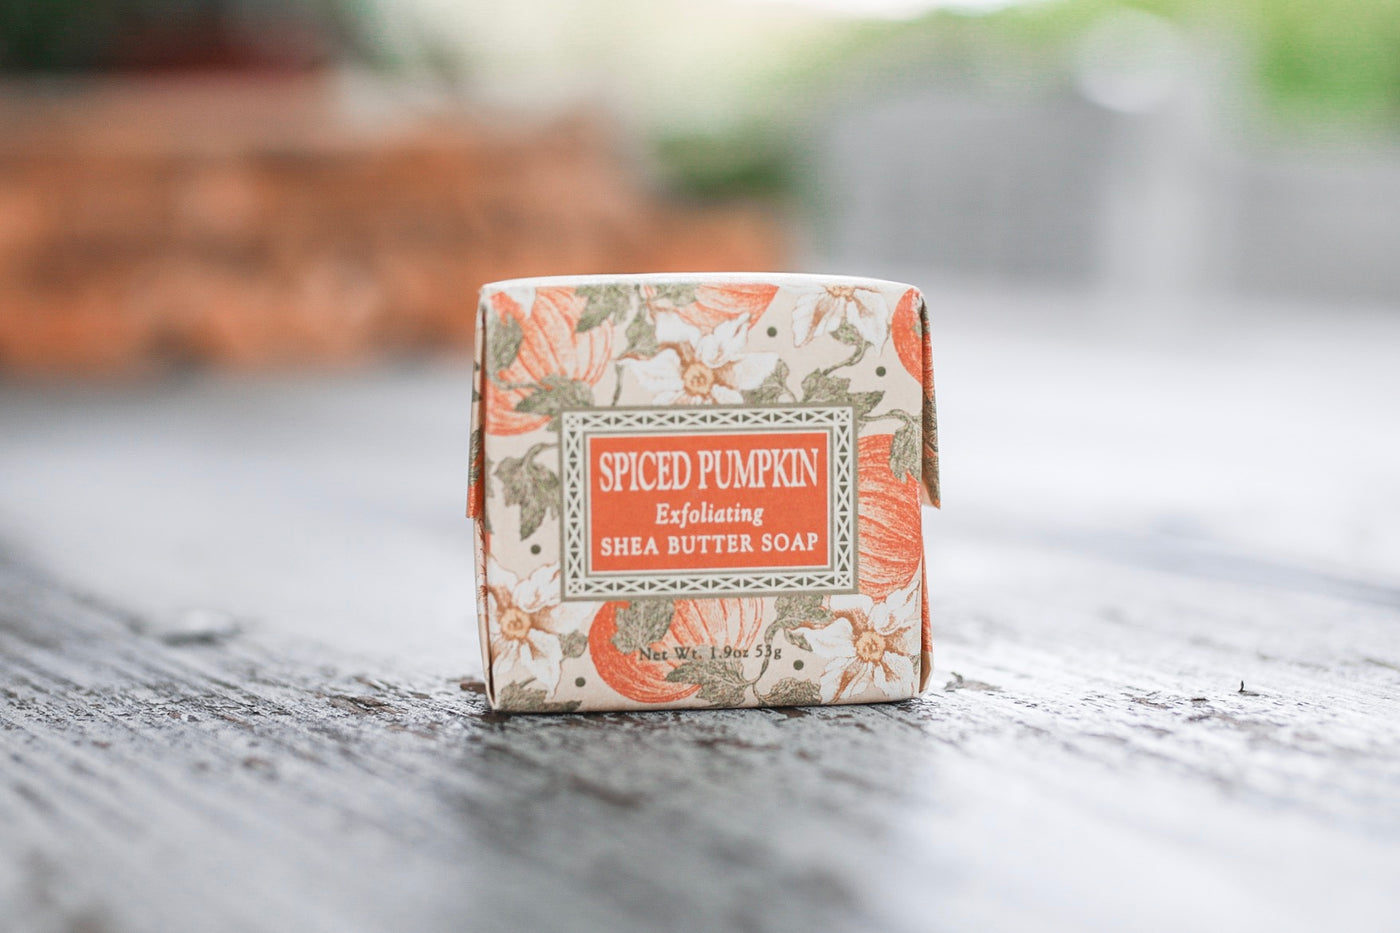 Spiced Pumpkin Exfoliating Shea Butter Soap